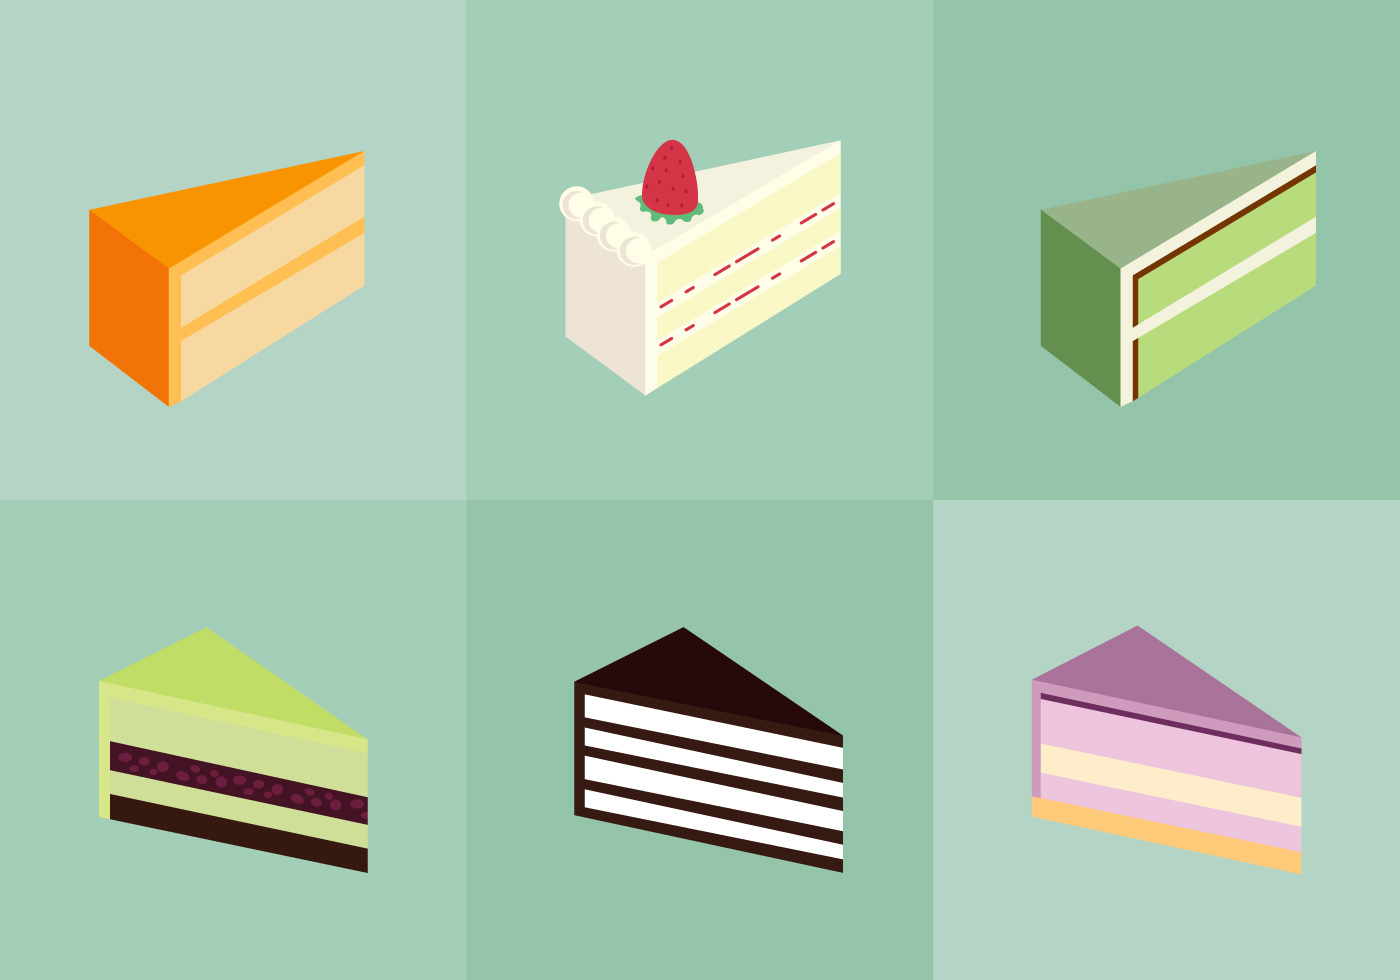 Cake Slice Isolated - Download Free Vector Art, Stock ...